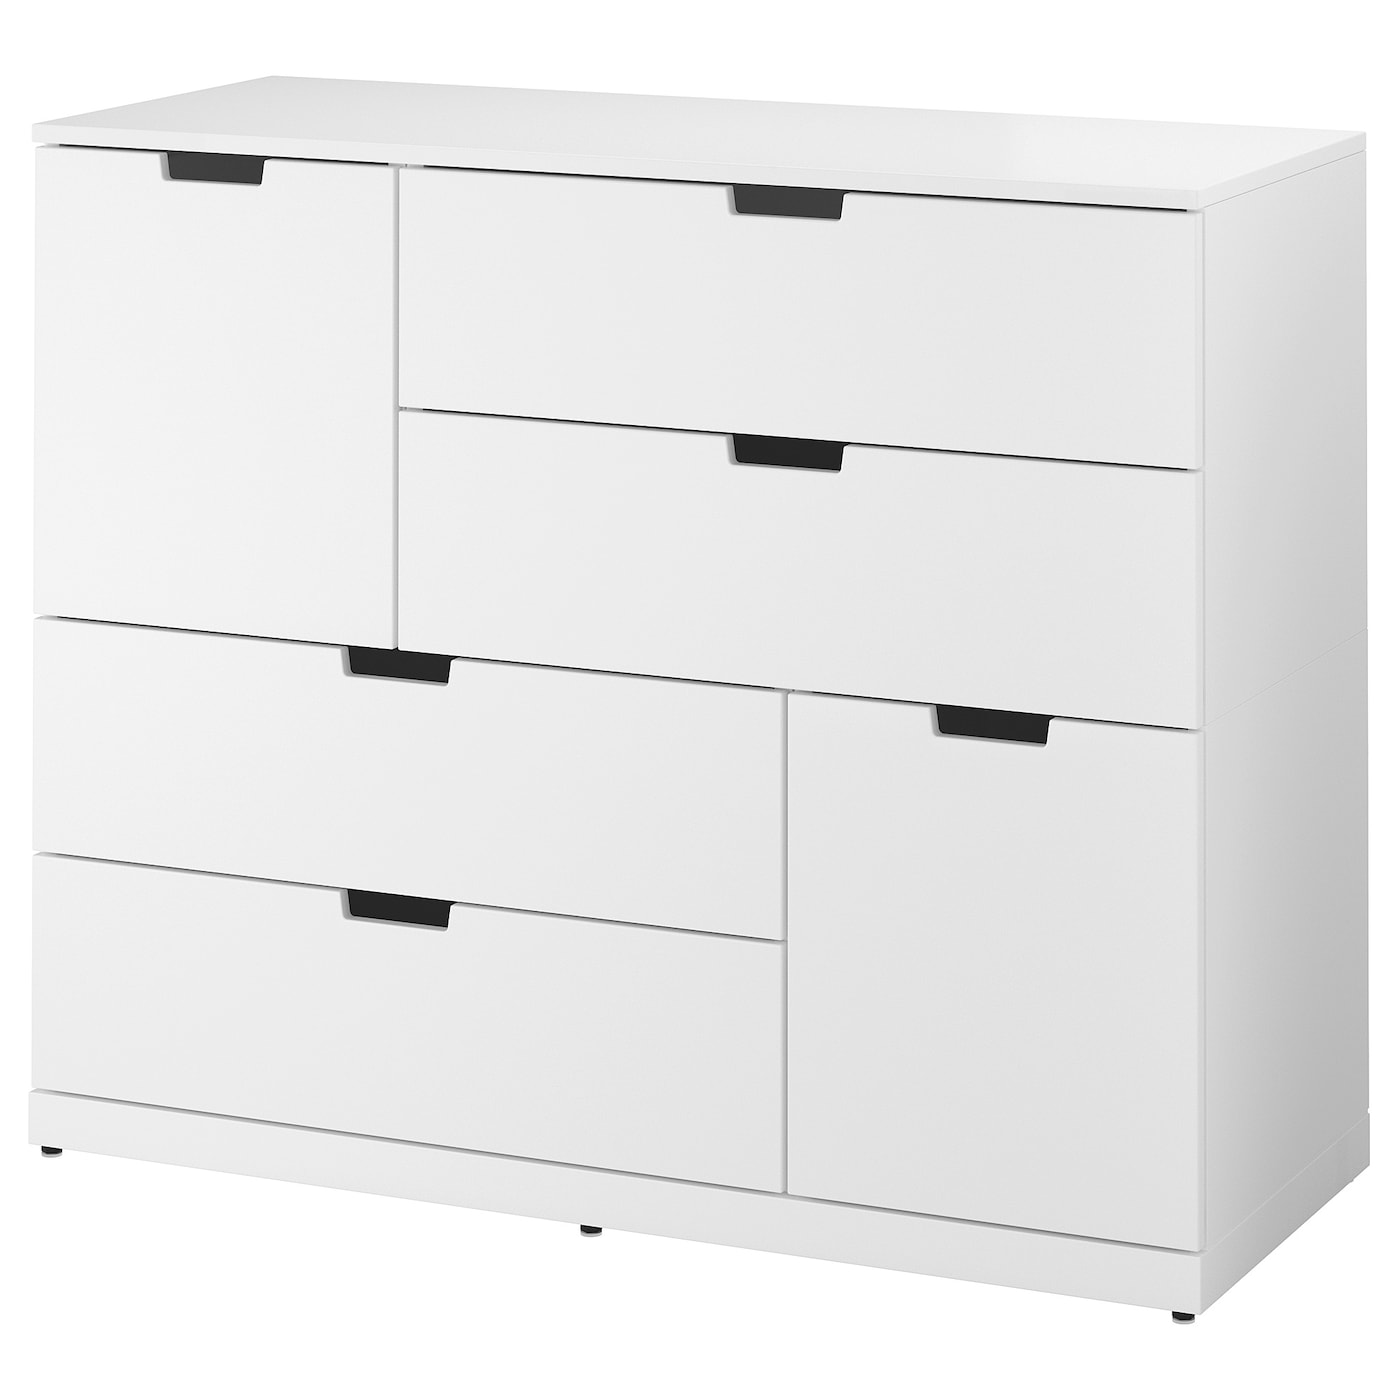 IKEA NORDLI chest of 6 drawers